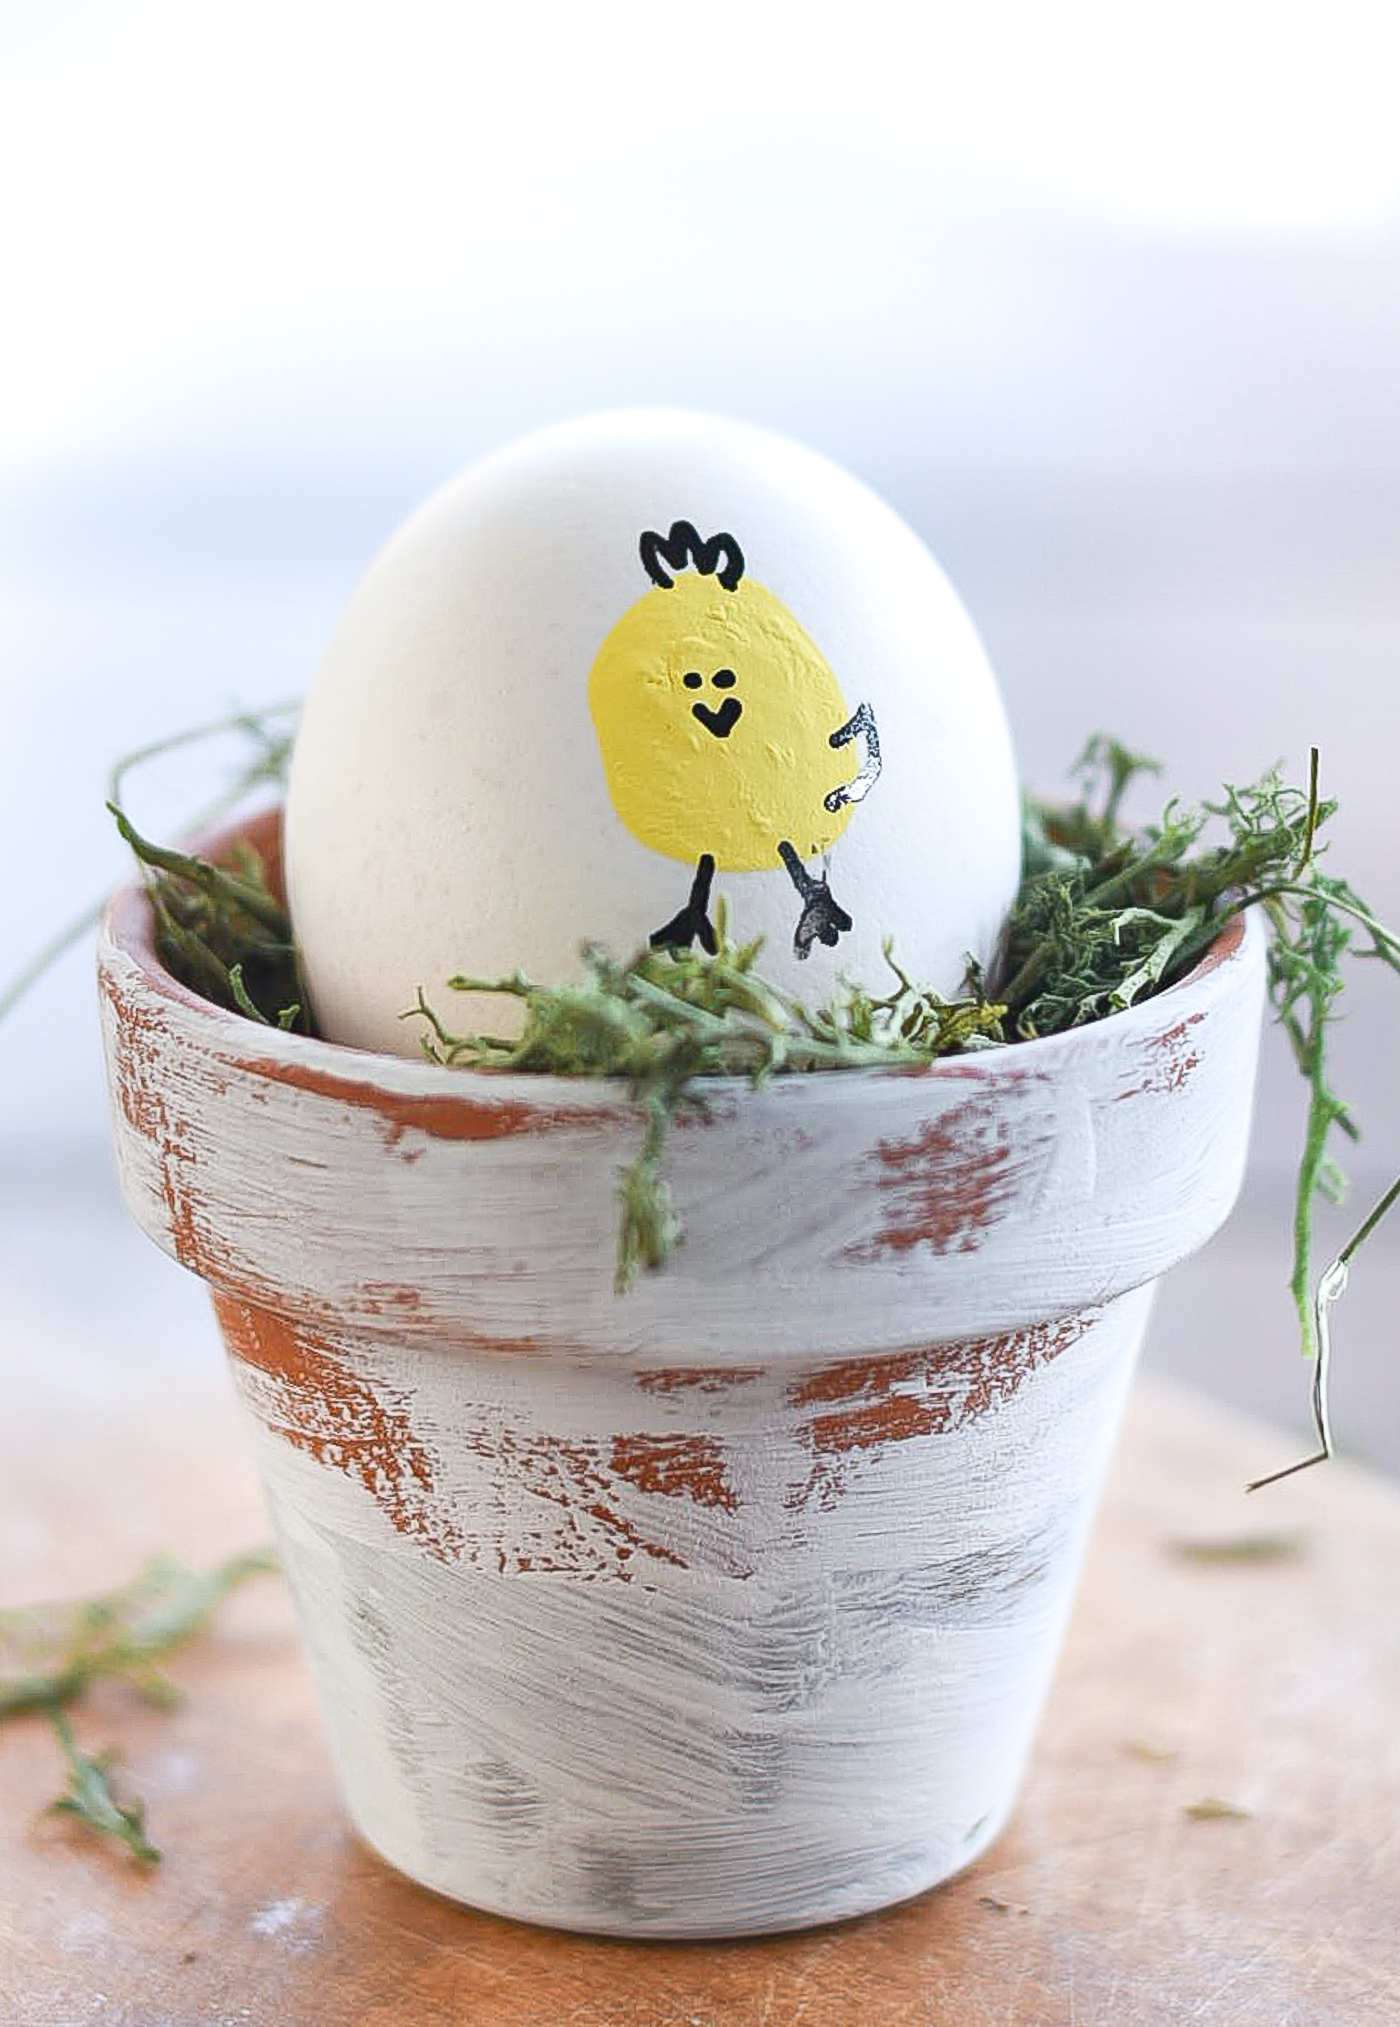 Thumbprint Chick Easter Eggs. Decorating Eggs with Paint. Easter Egg Decorating Ideas.